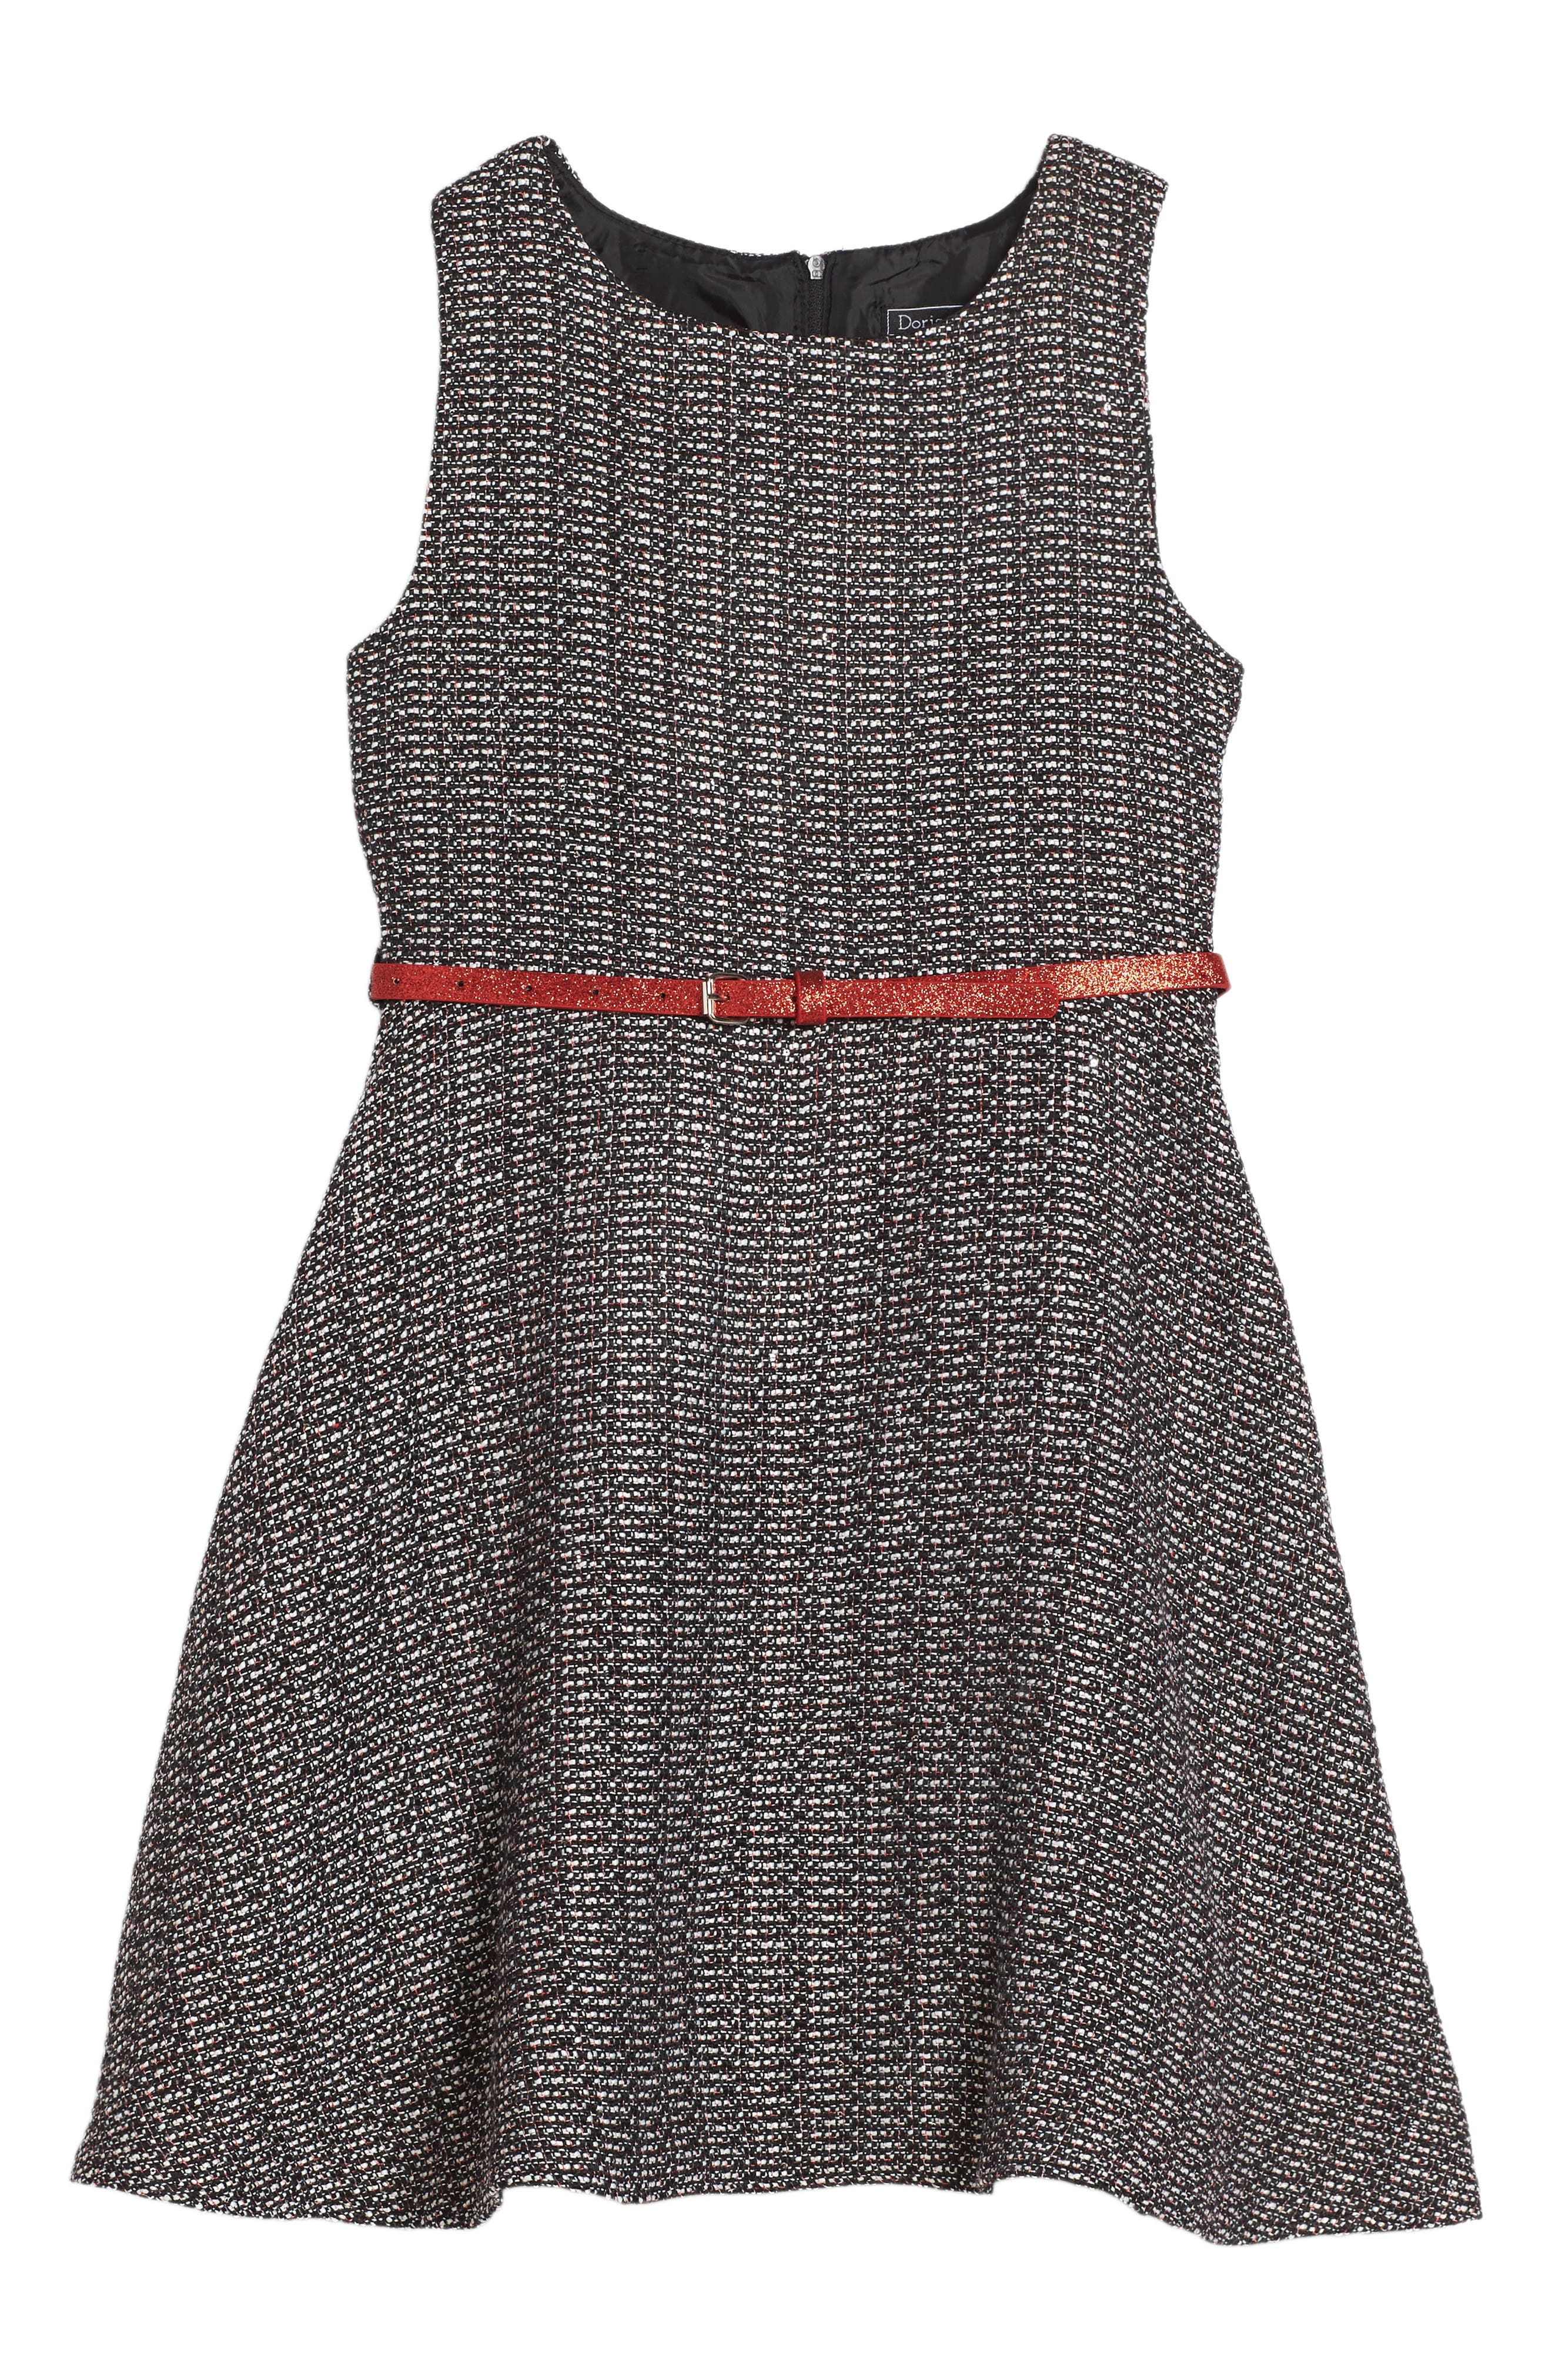 Ella Tweed Dress,                             Main thumbnail 1, color,